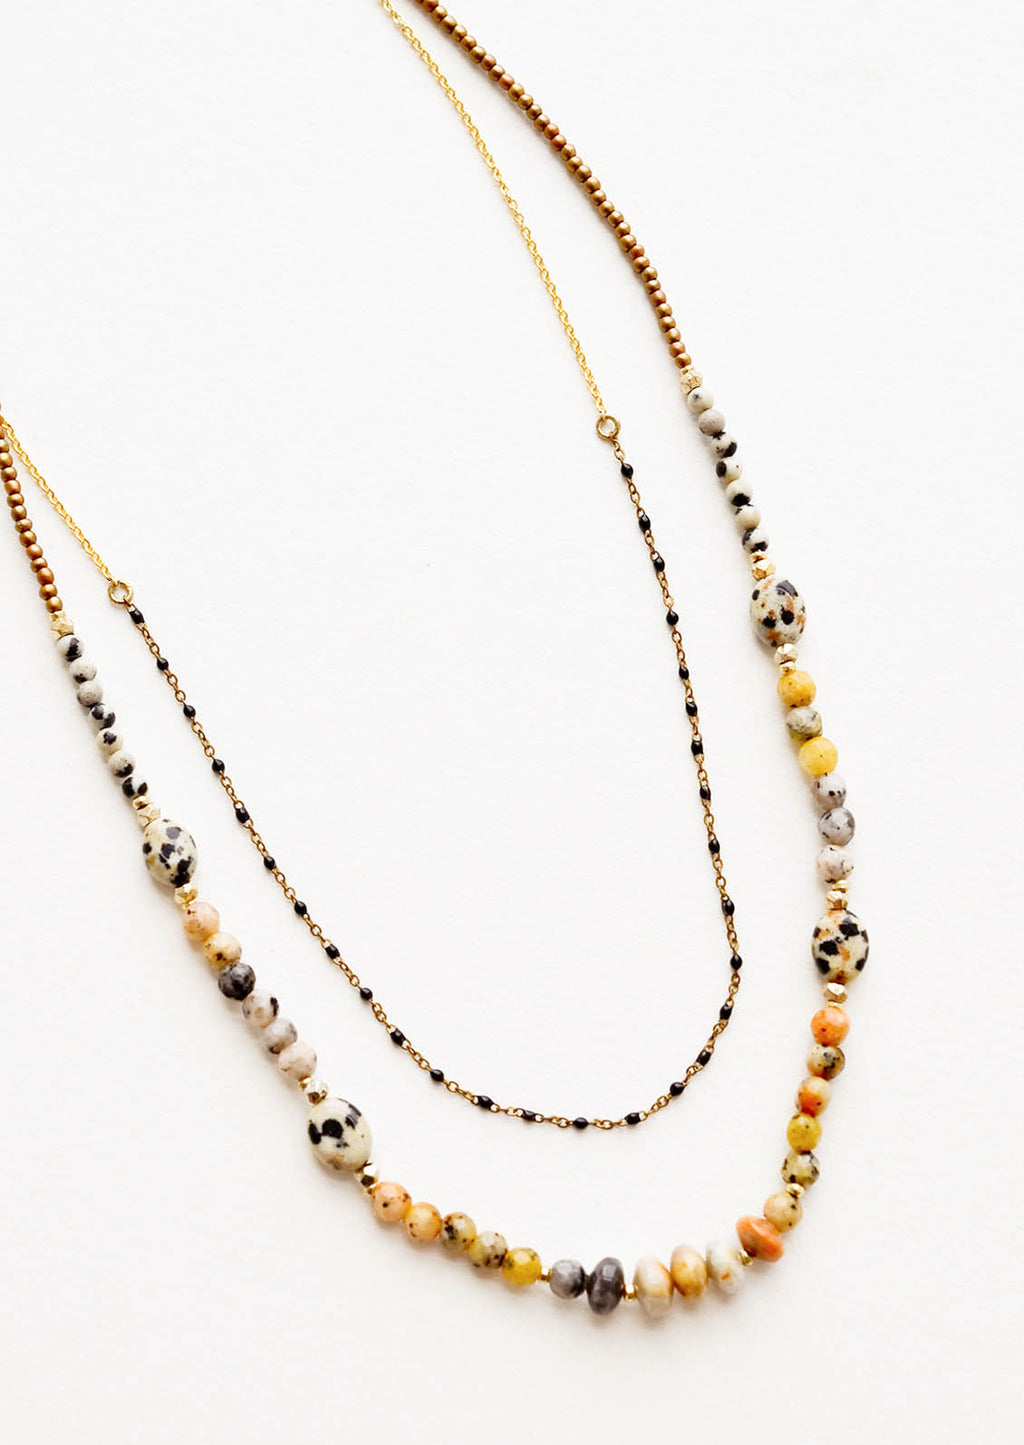 Paint Mines Layered Necklace in  - LEIF